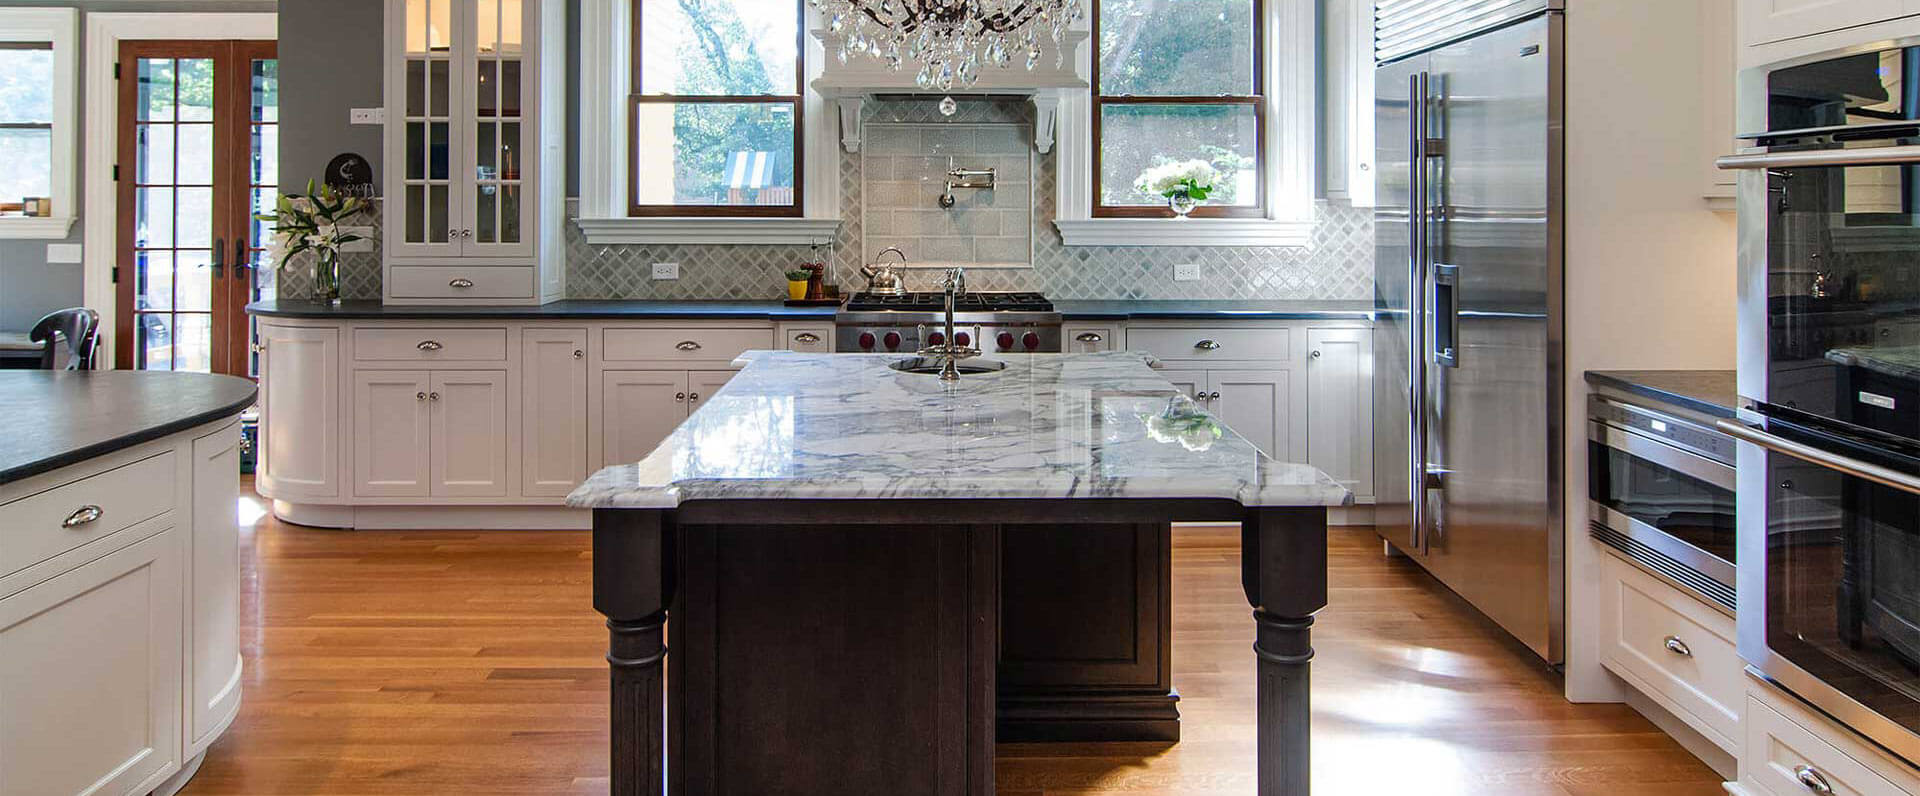 Kitchen Company Kitchen Design Remodeling In North Haven Ct The Kitchen Company